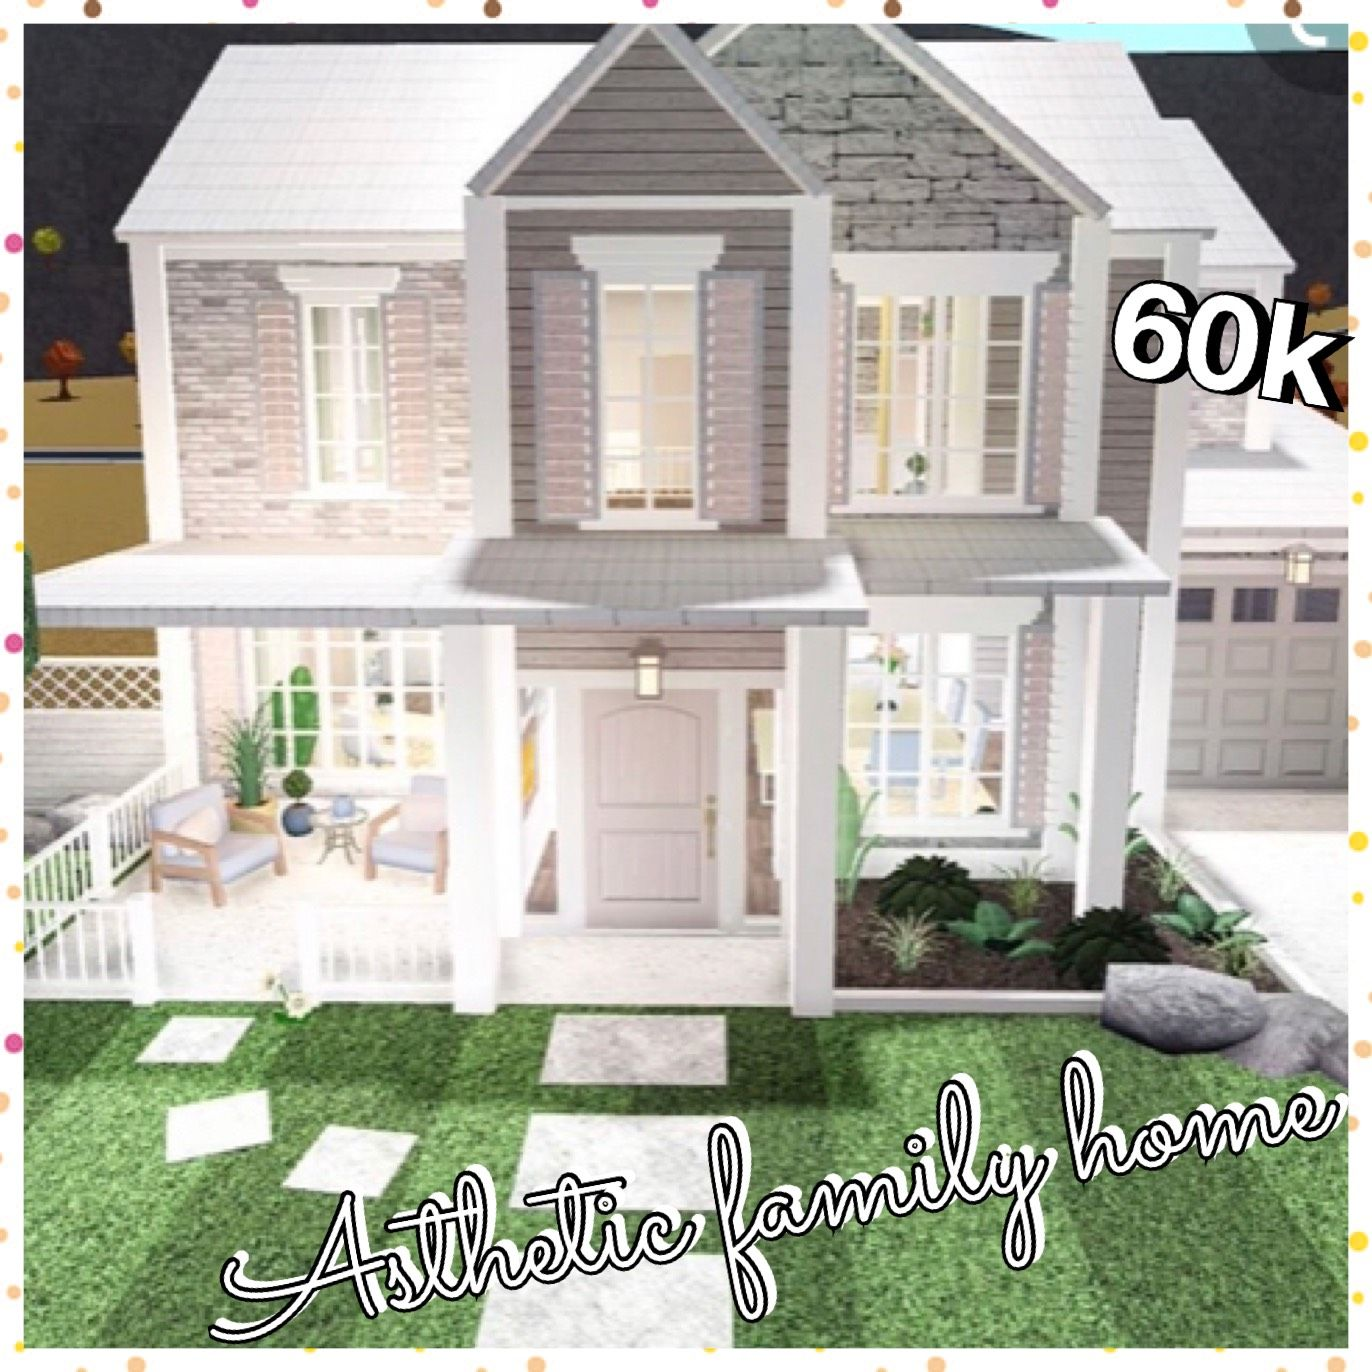 Pin By Addy Fiore On Bloxberg In 2020 House Layouts Diy House Plans Luxury House Plans